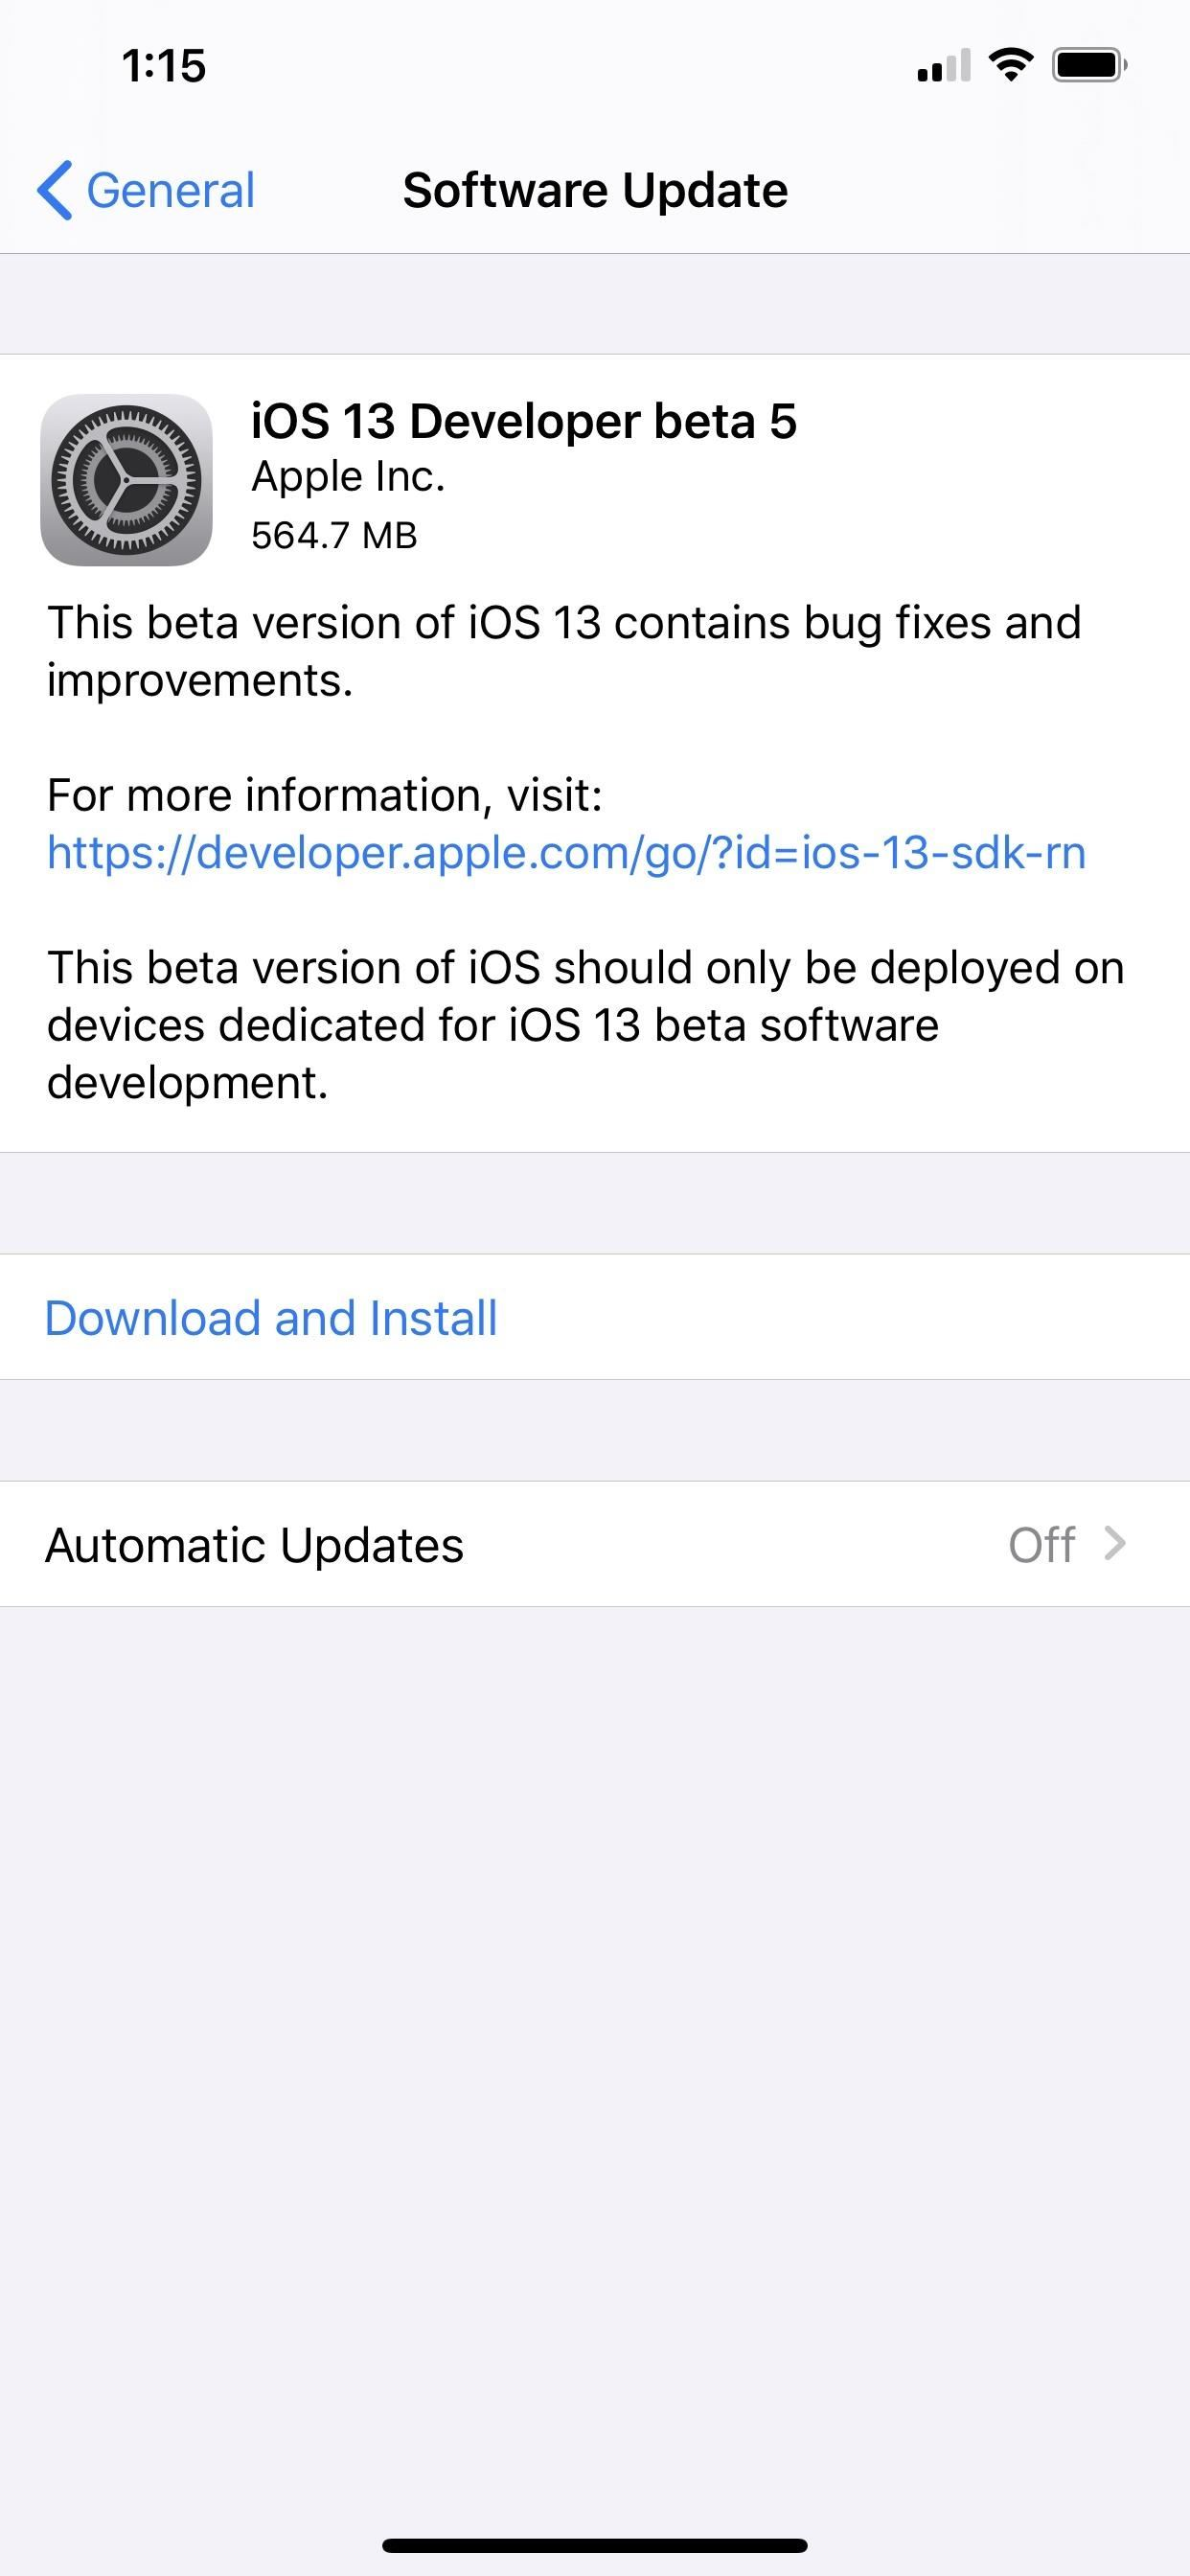 Apple Just Released iOS 13 Developer Beta 5 for iPhone